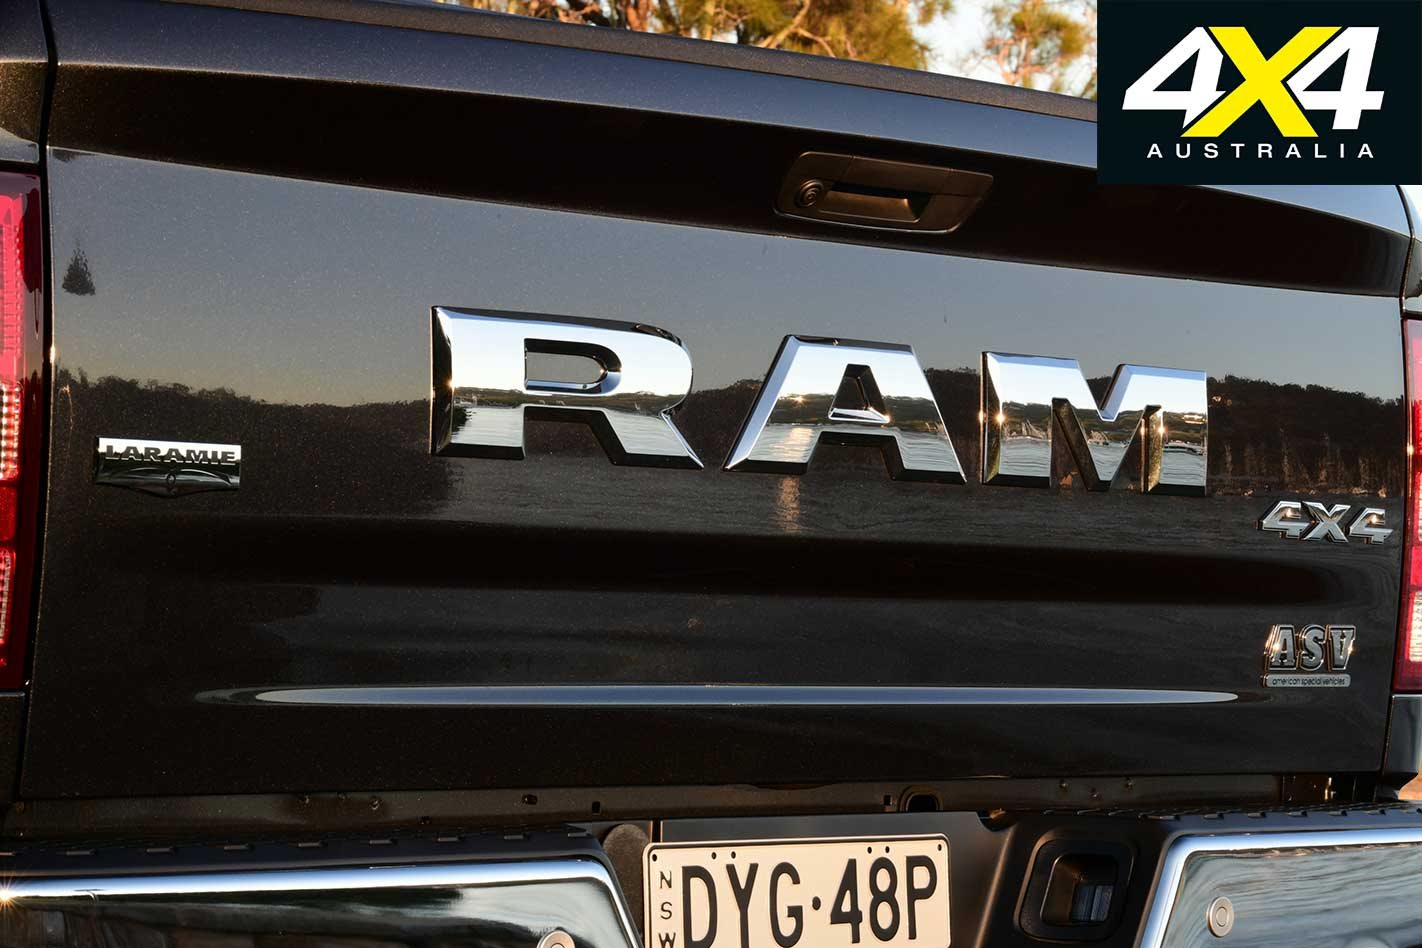 2019 RAM 1500 Laramie gets new grille and raised chrome badging